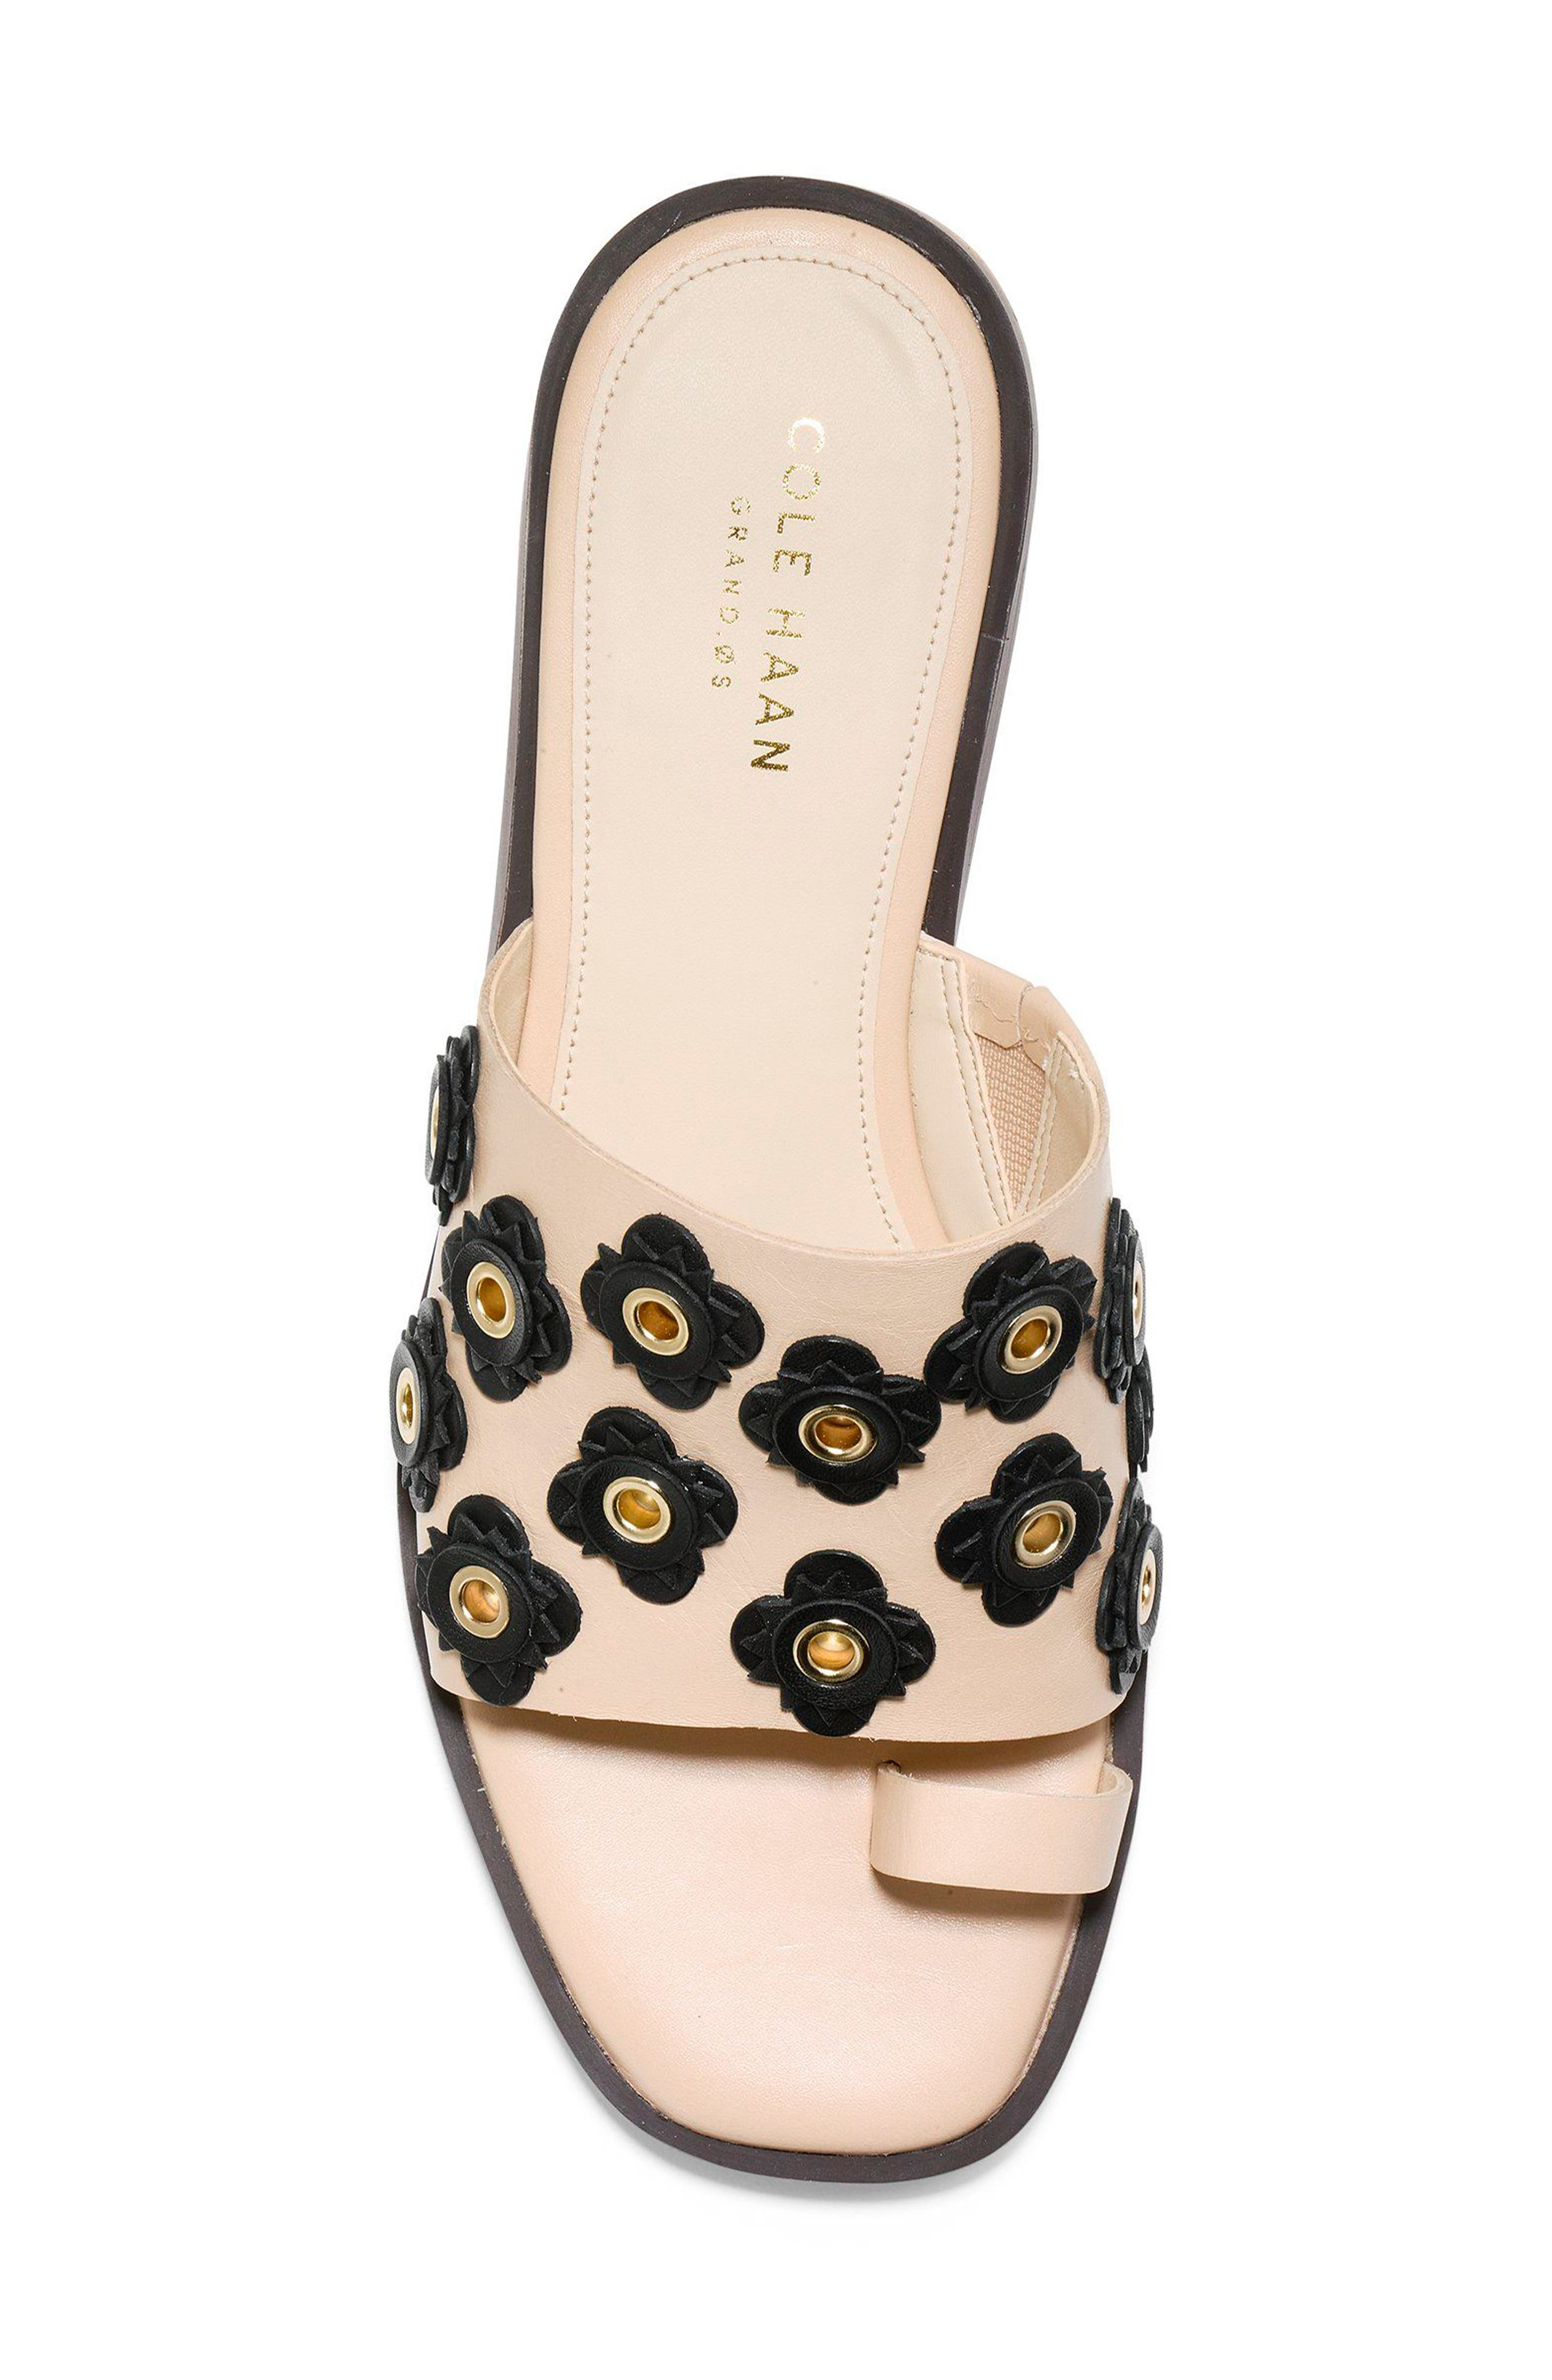 Carly Floral Sandal,                             Alternate thumbnail 5, color,                             Nude/ Black Leather